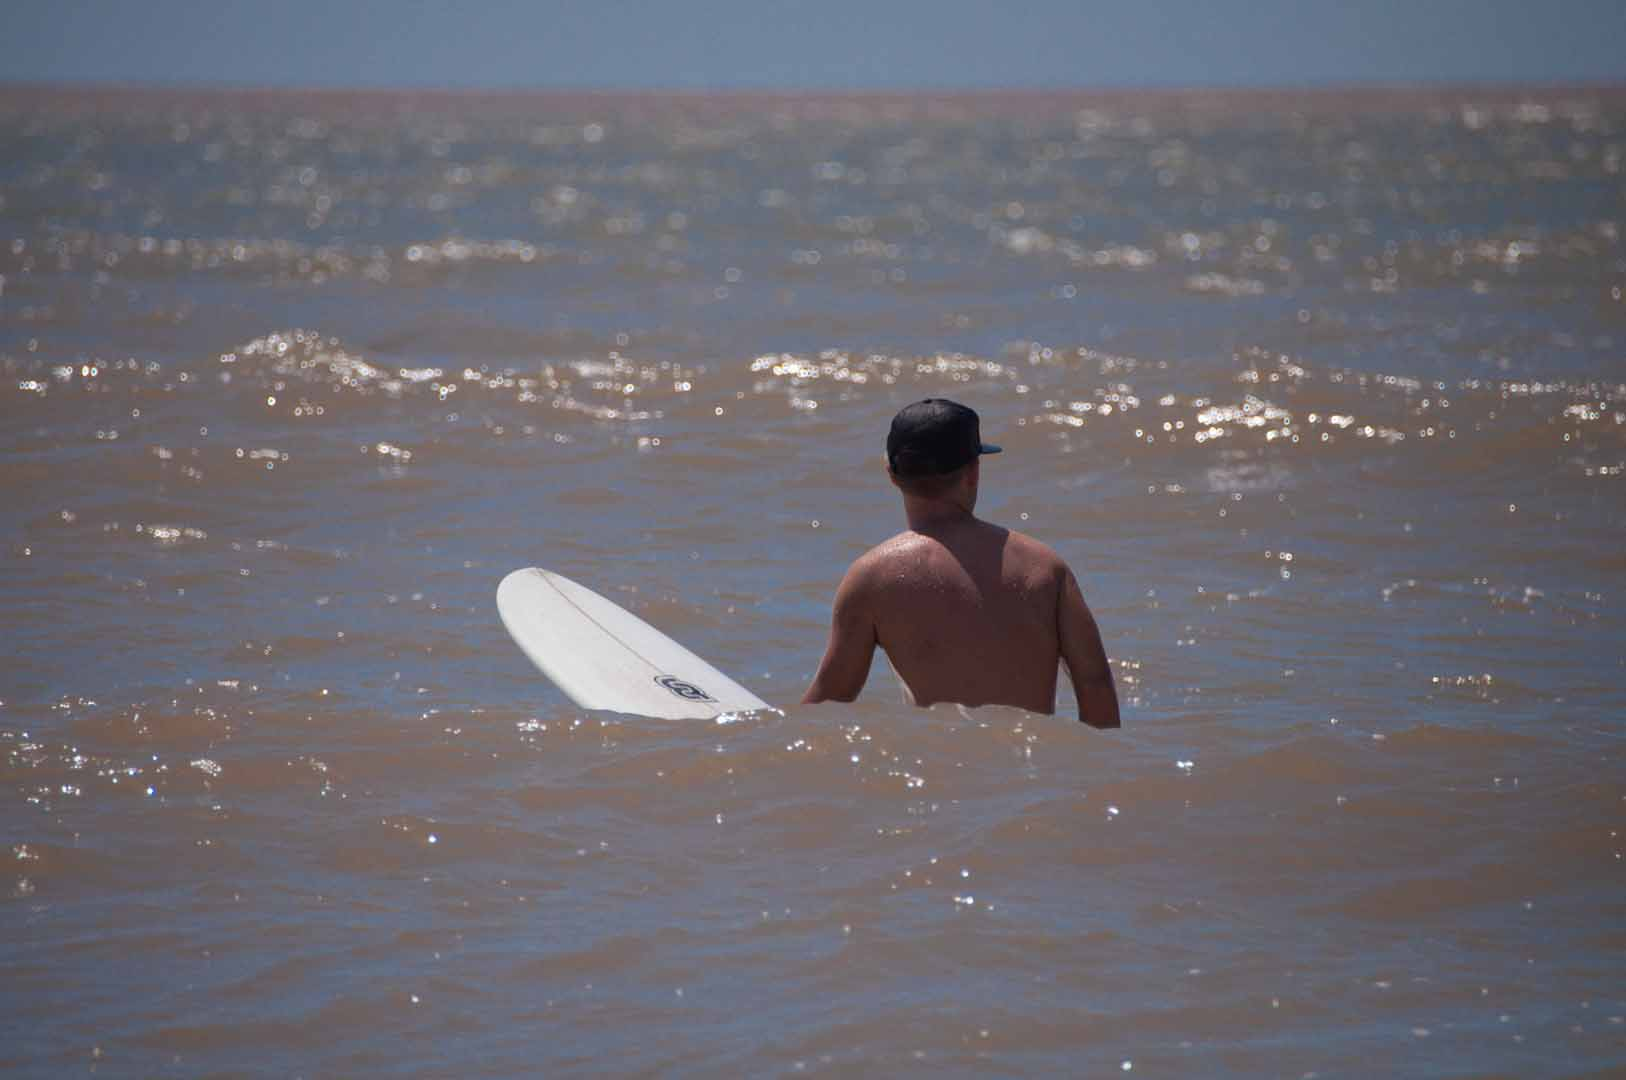 SurfsideLateJune_20150627_152